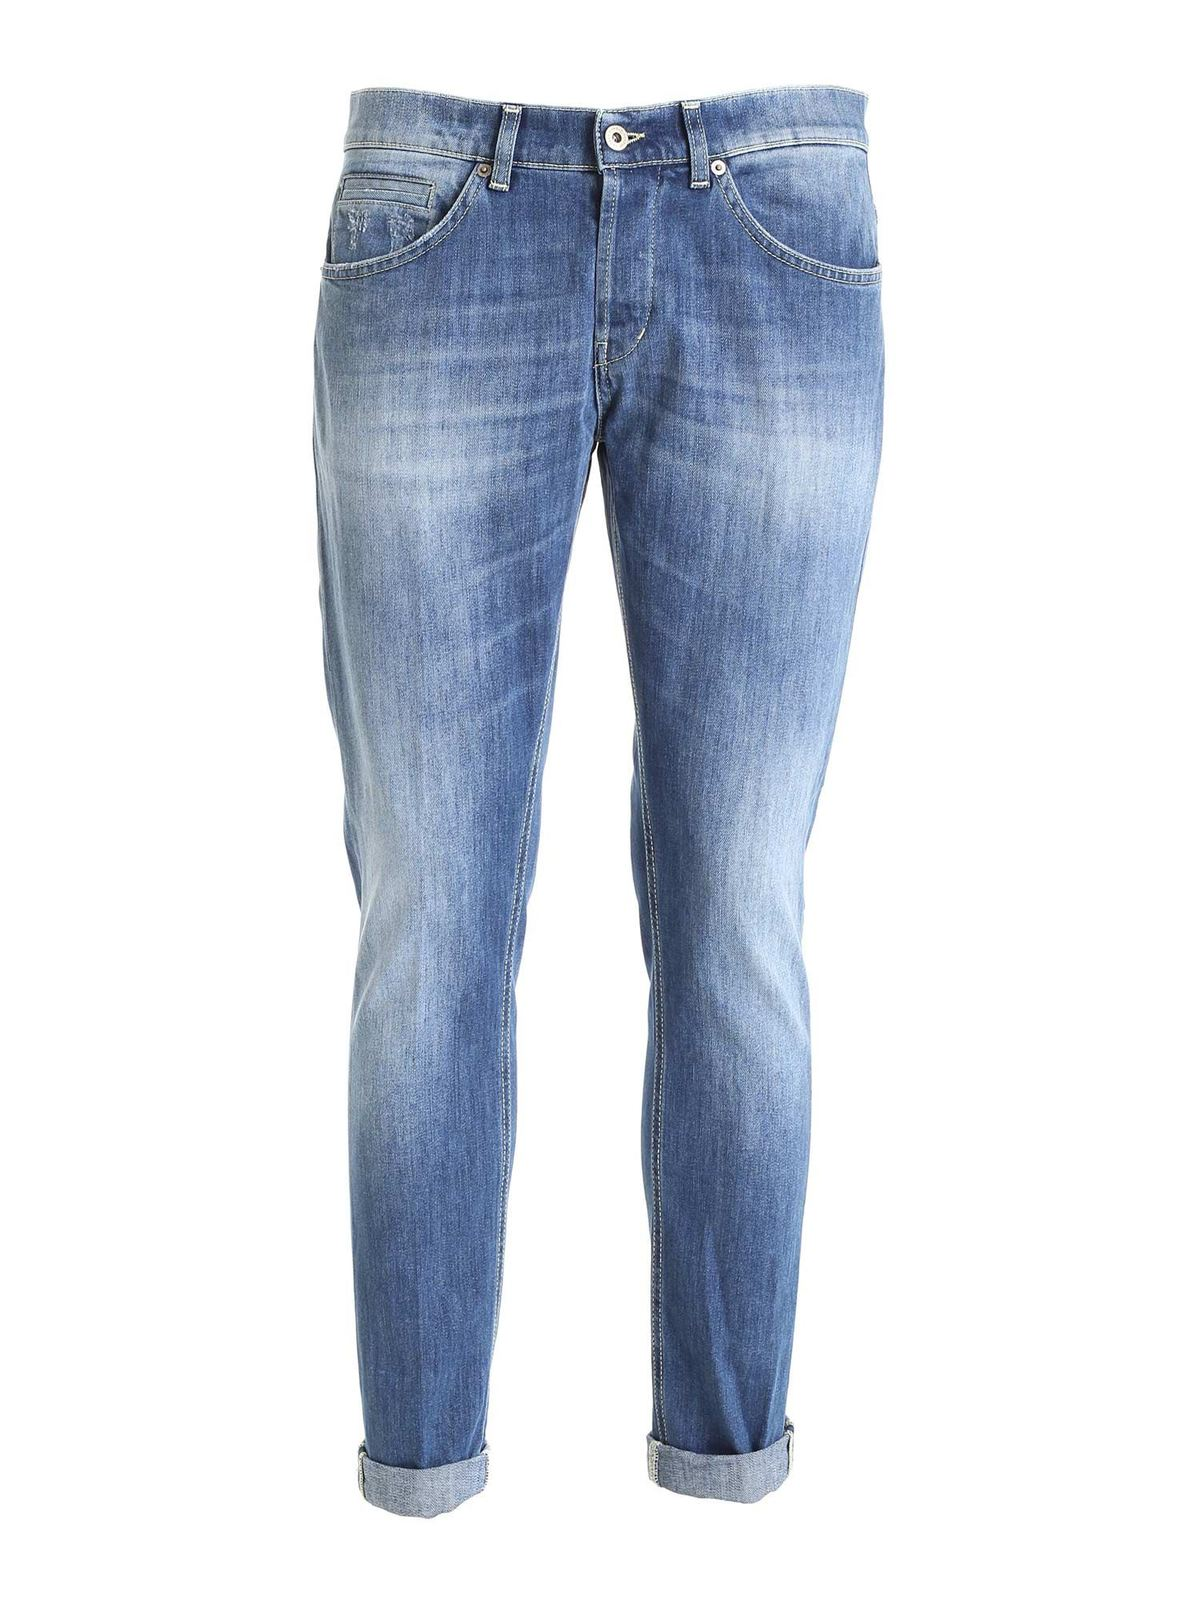 Dondup Cottons GEORGE JEANS IN LIGHT BLUE